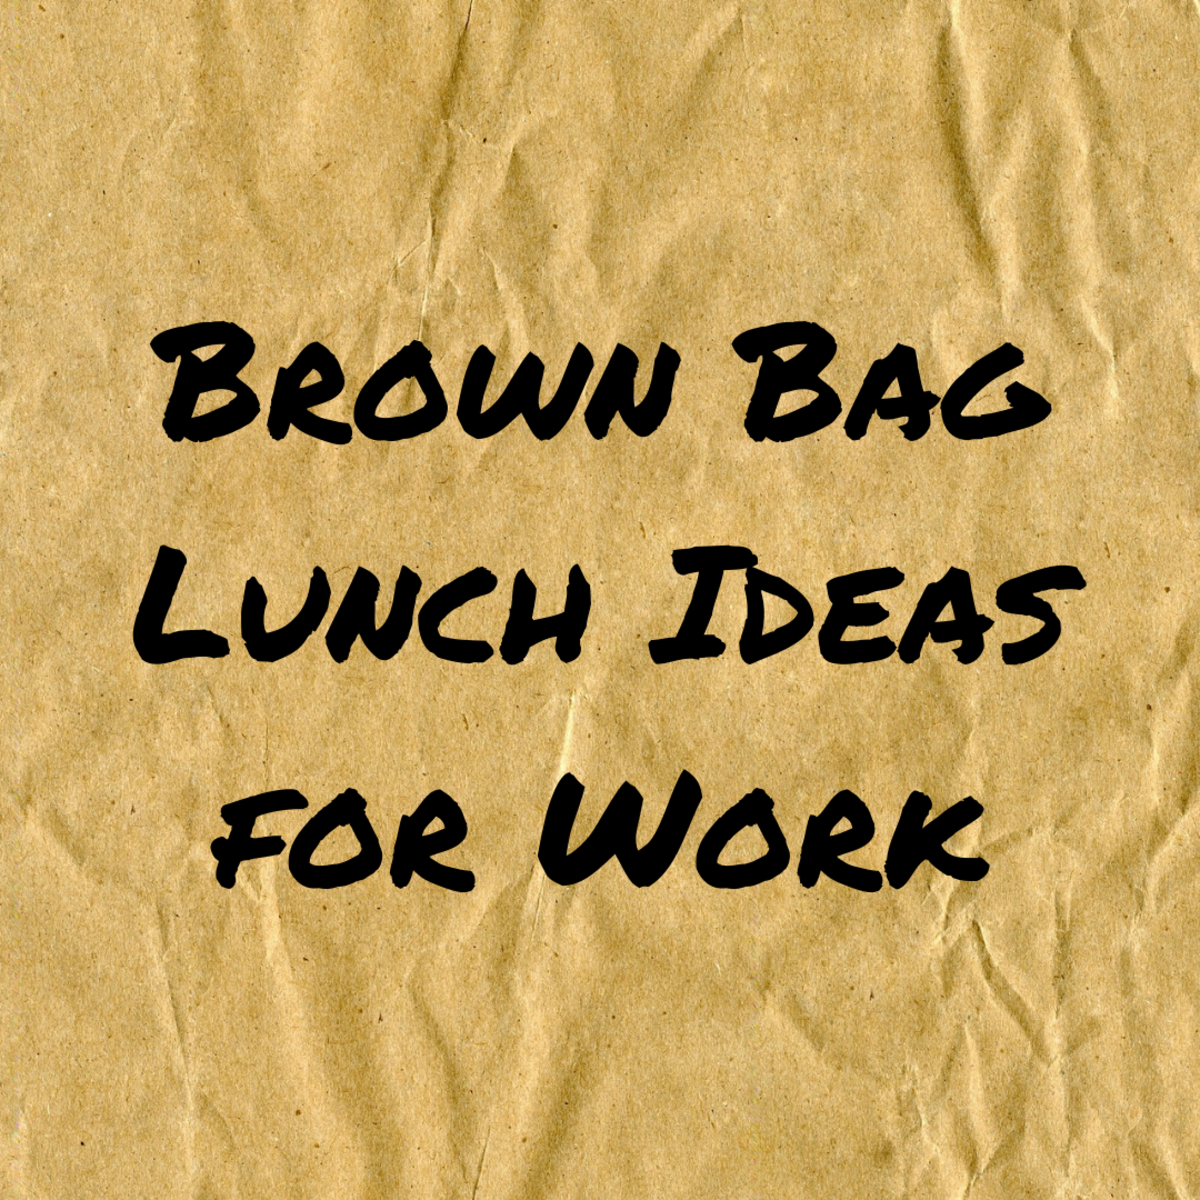 Get tips—and food ideas—for bringing a brown bag lunch to work.